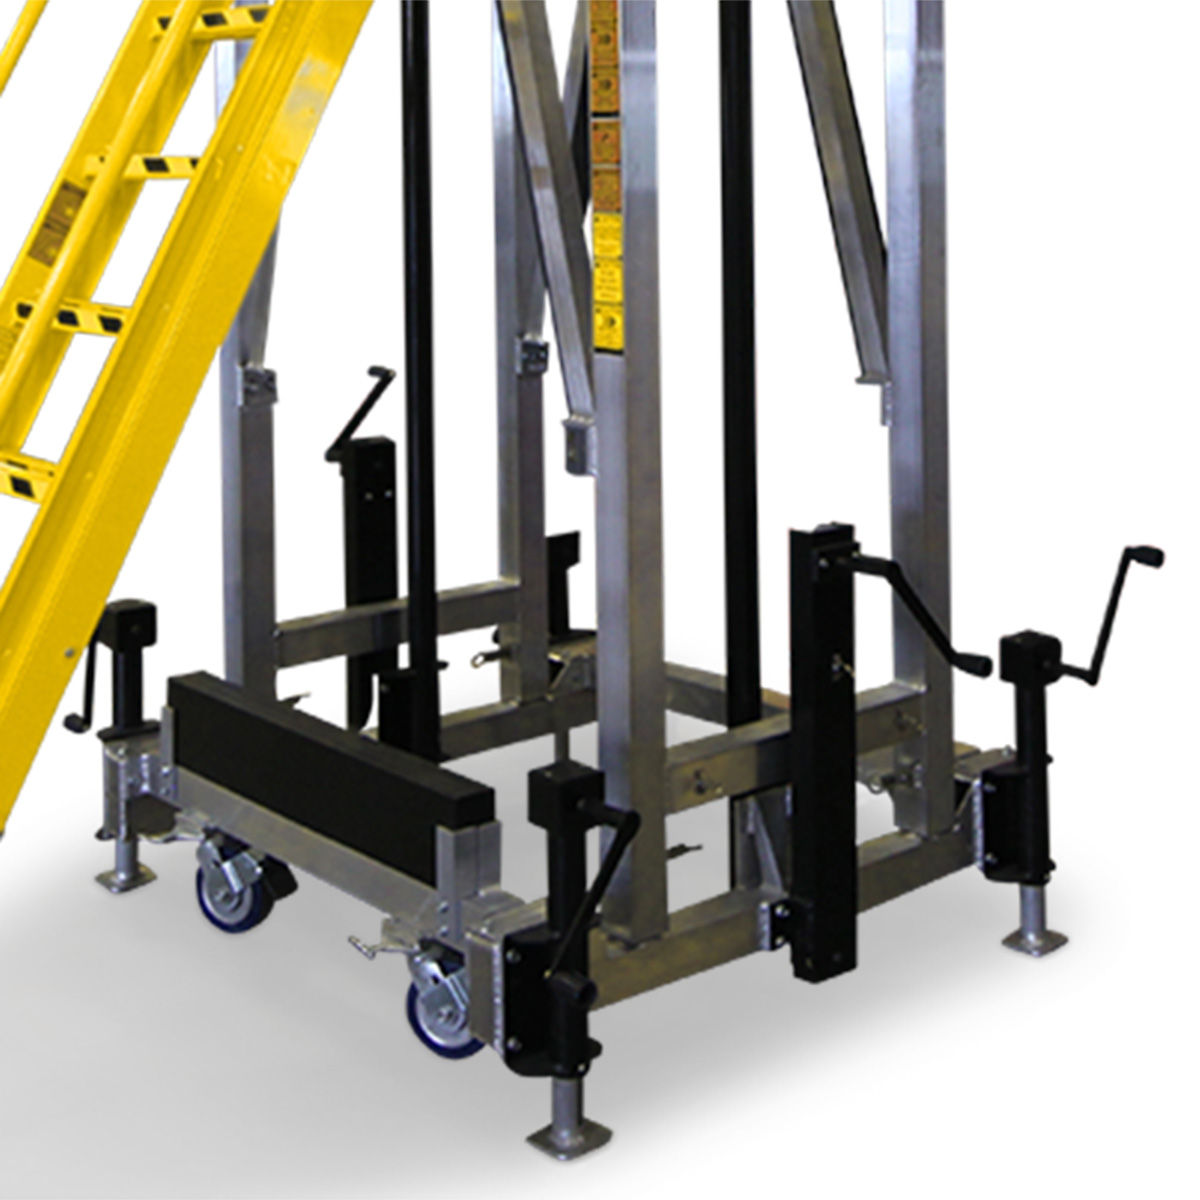 Agusta Westland AW139 – Daily Maintenance Floor leveling jacks, floor locks and electric lifting columns for OSHA compliant, mobile, height-adjustable work stands.